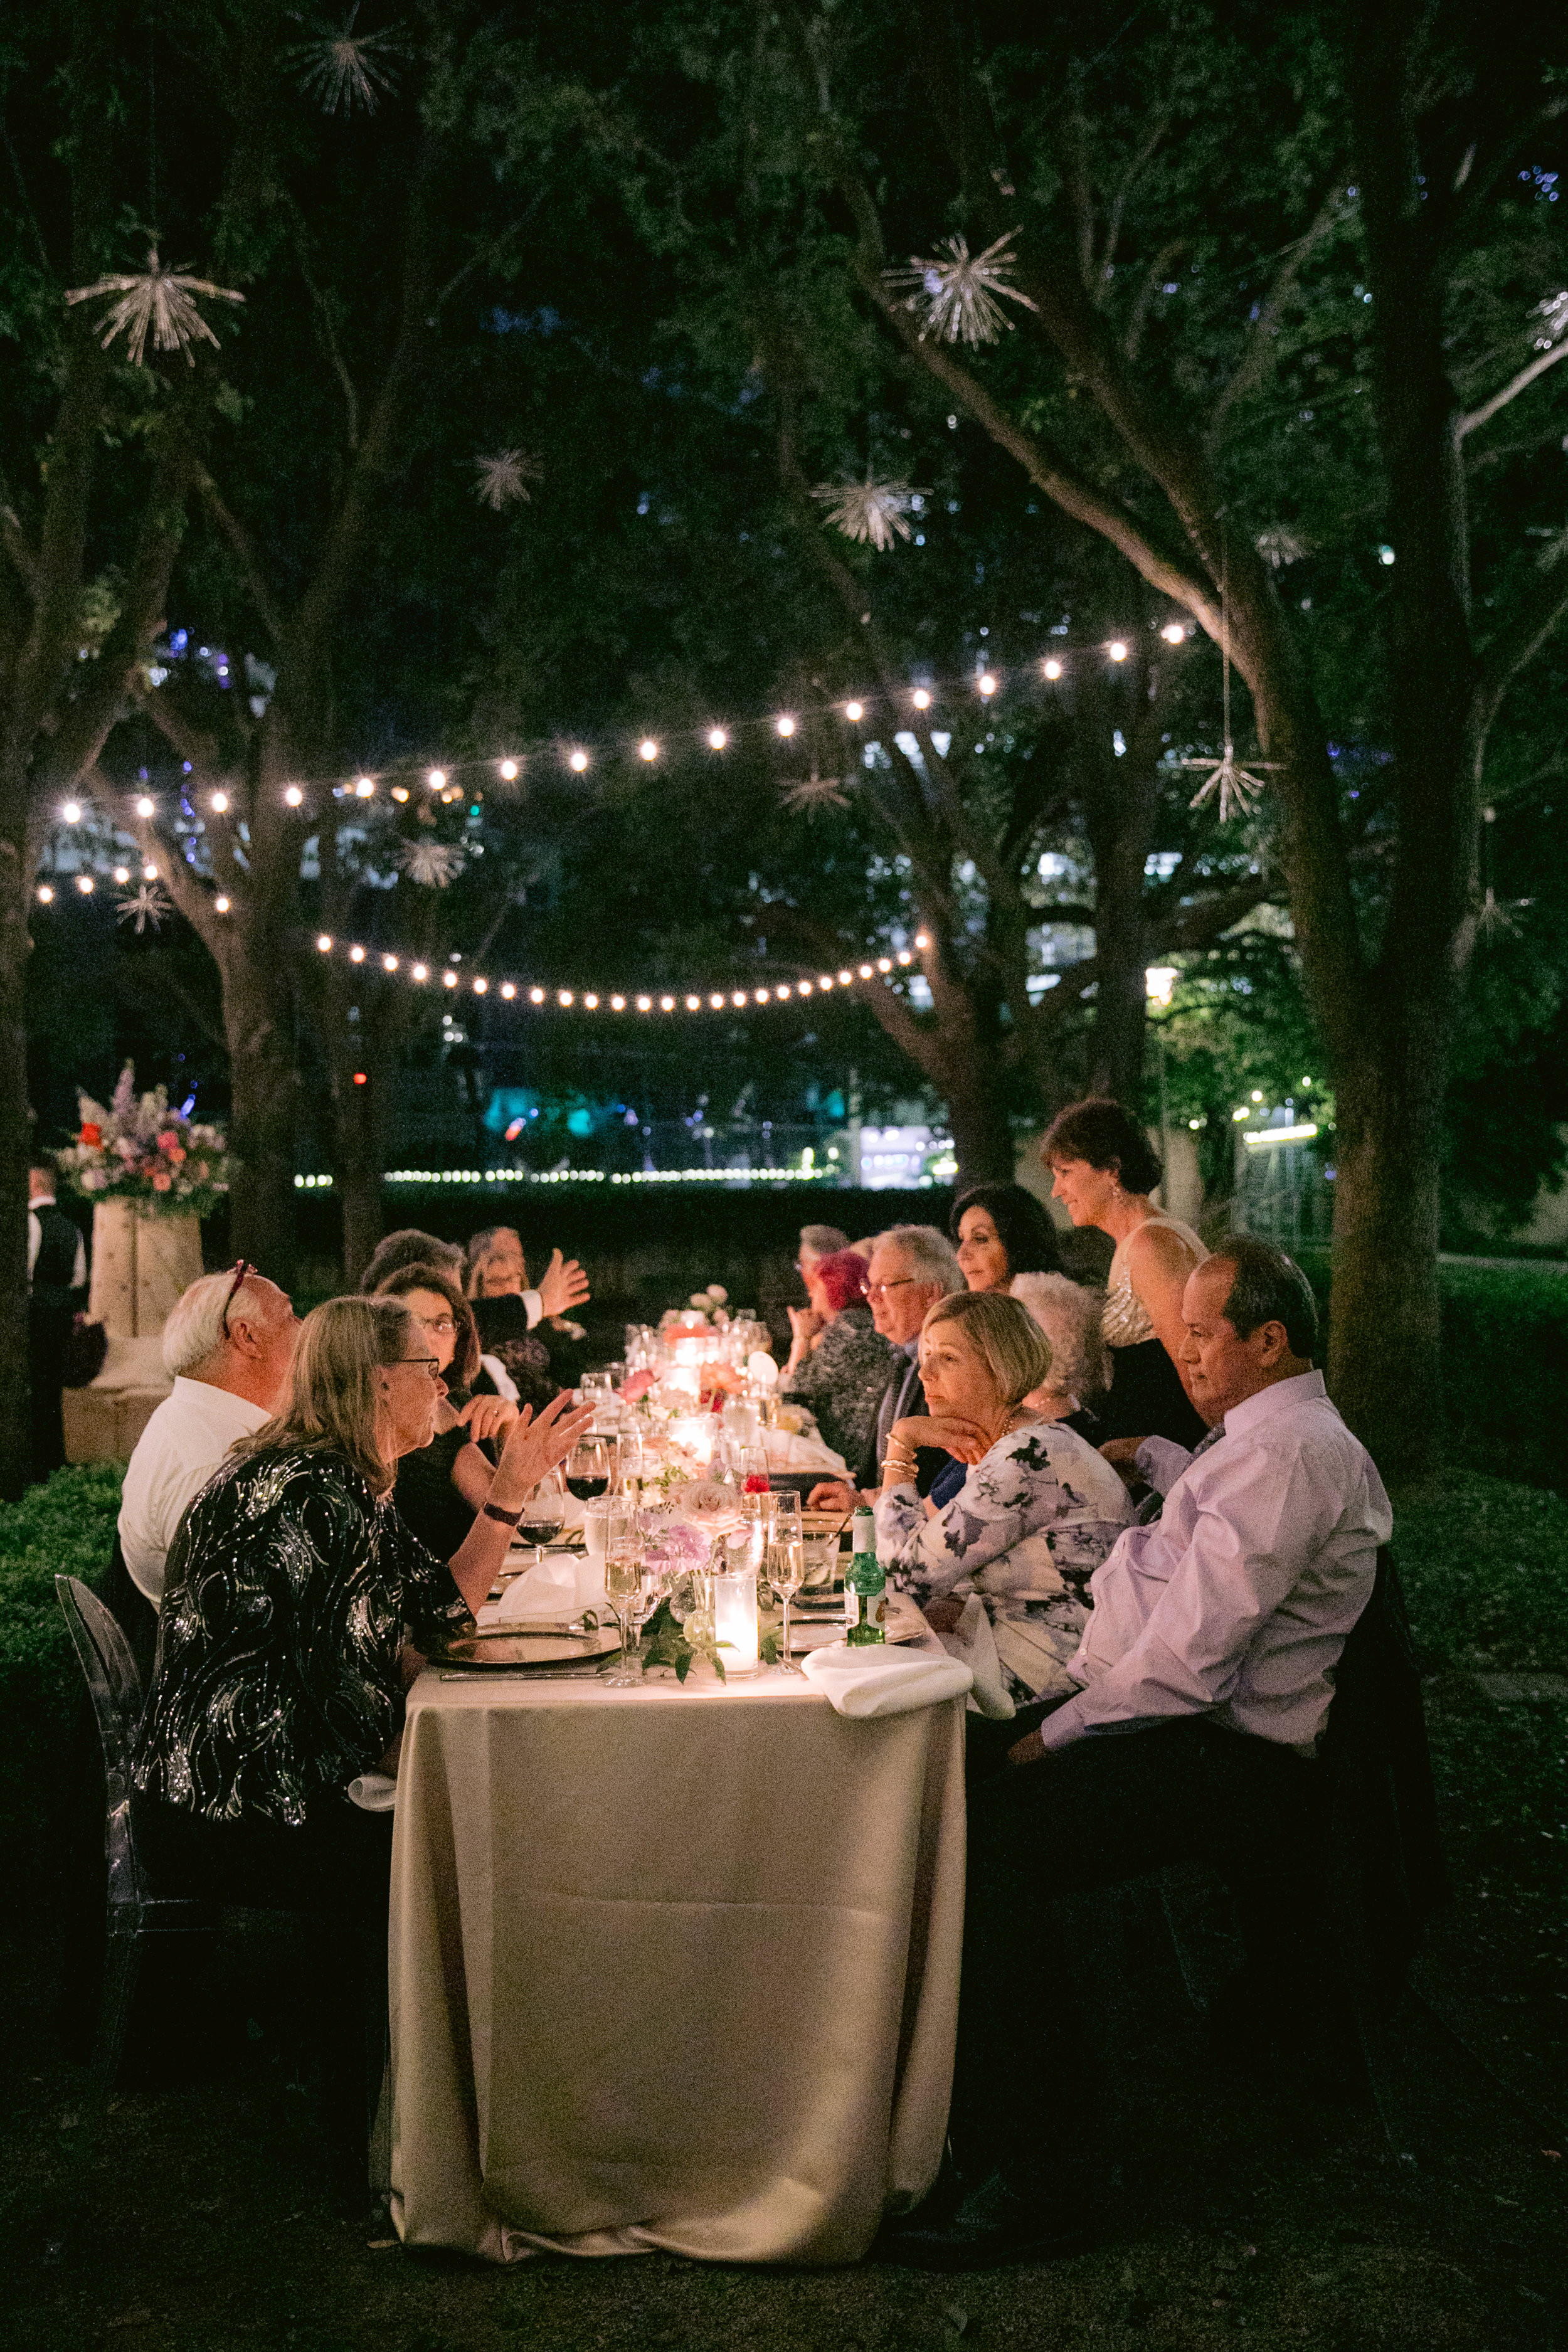 Blakeley-and-Alex-End-of-night-reception-Ivory-and-Vine.JPG